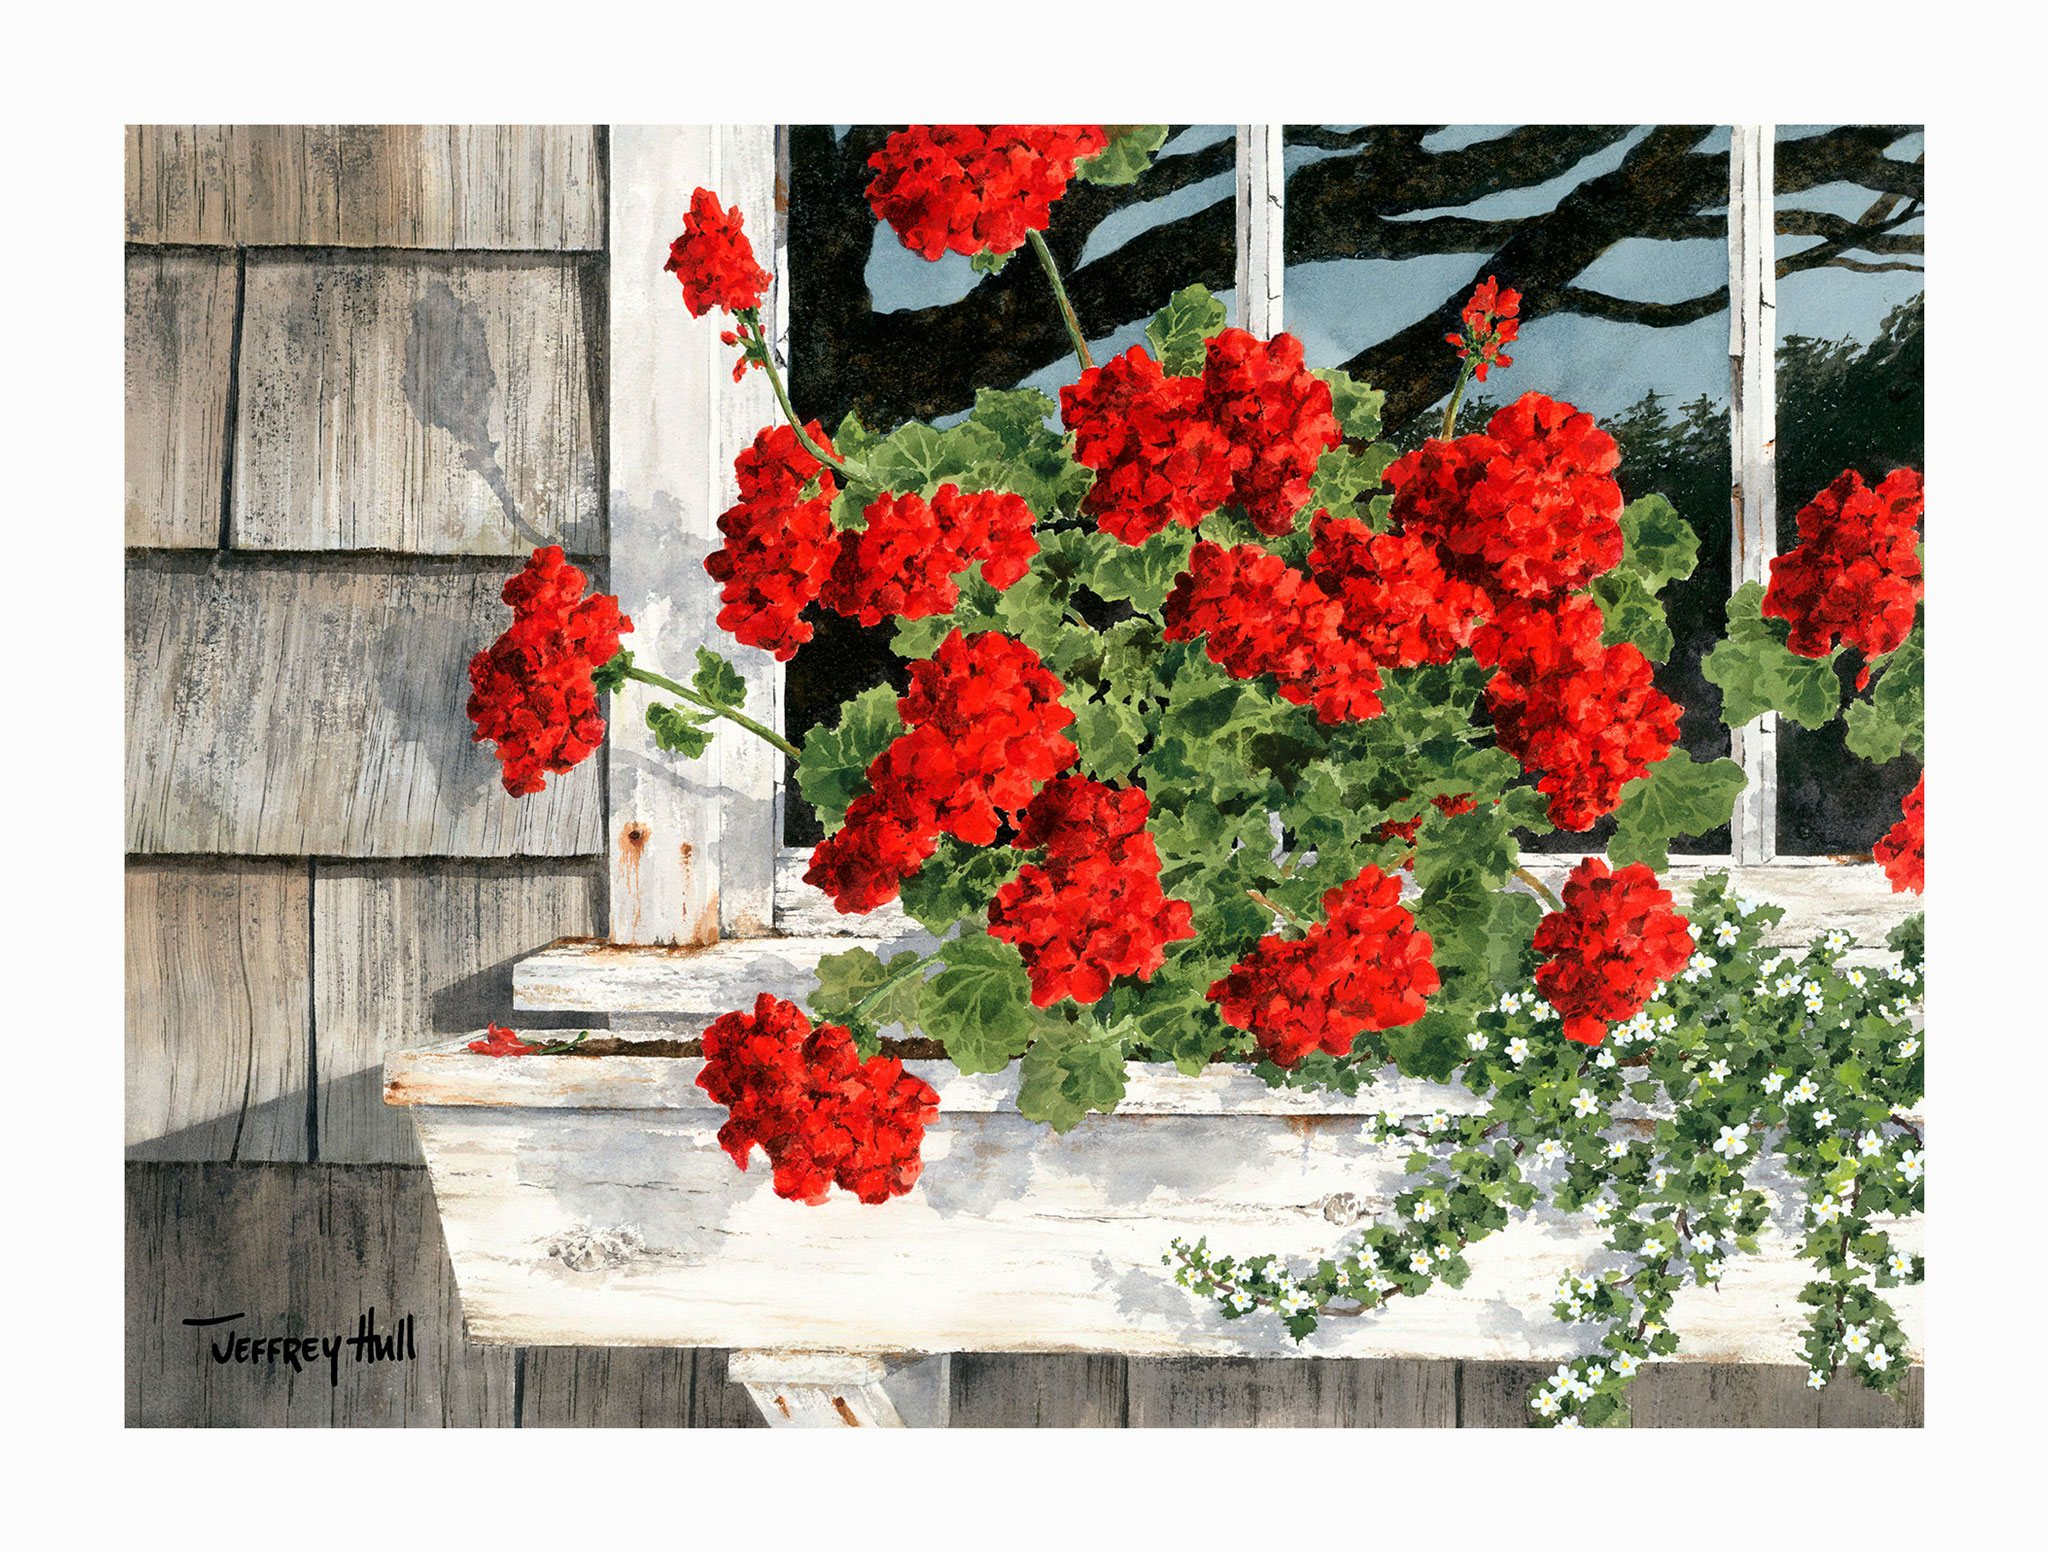 Carol_s-Geraniums-OpenEd-Unframed-4-Website-2021